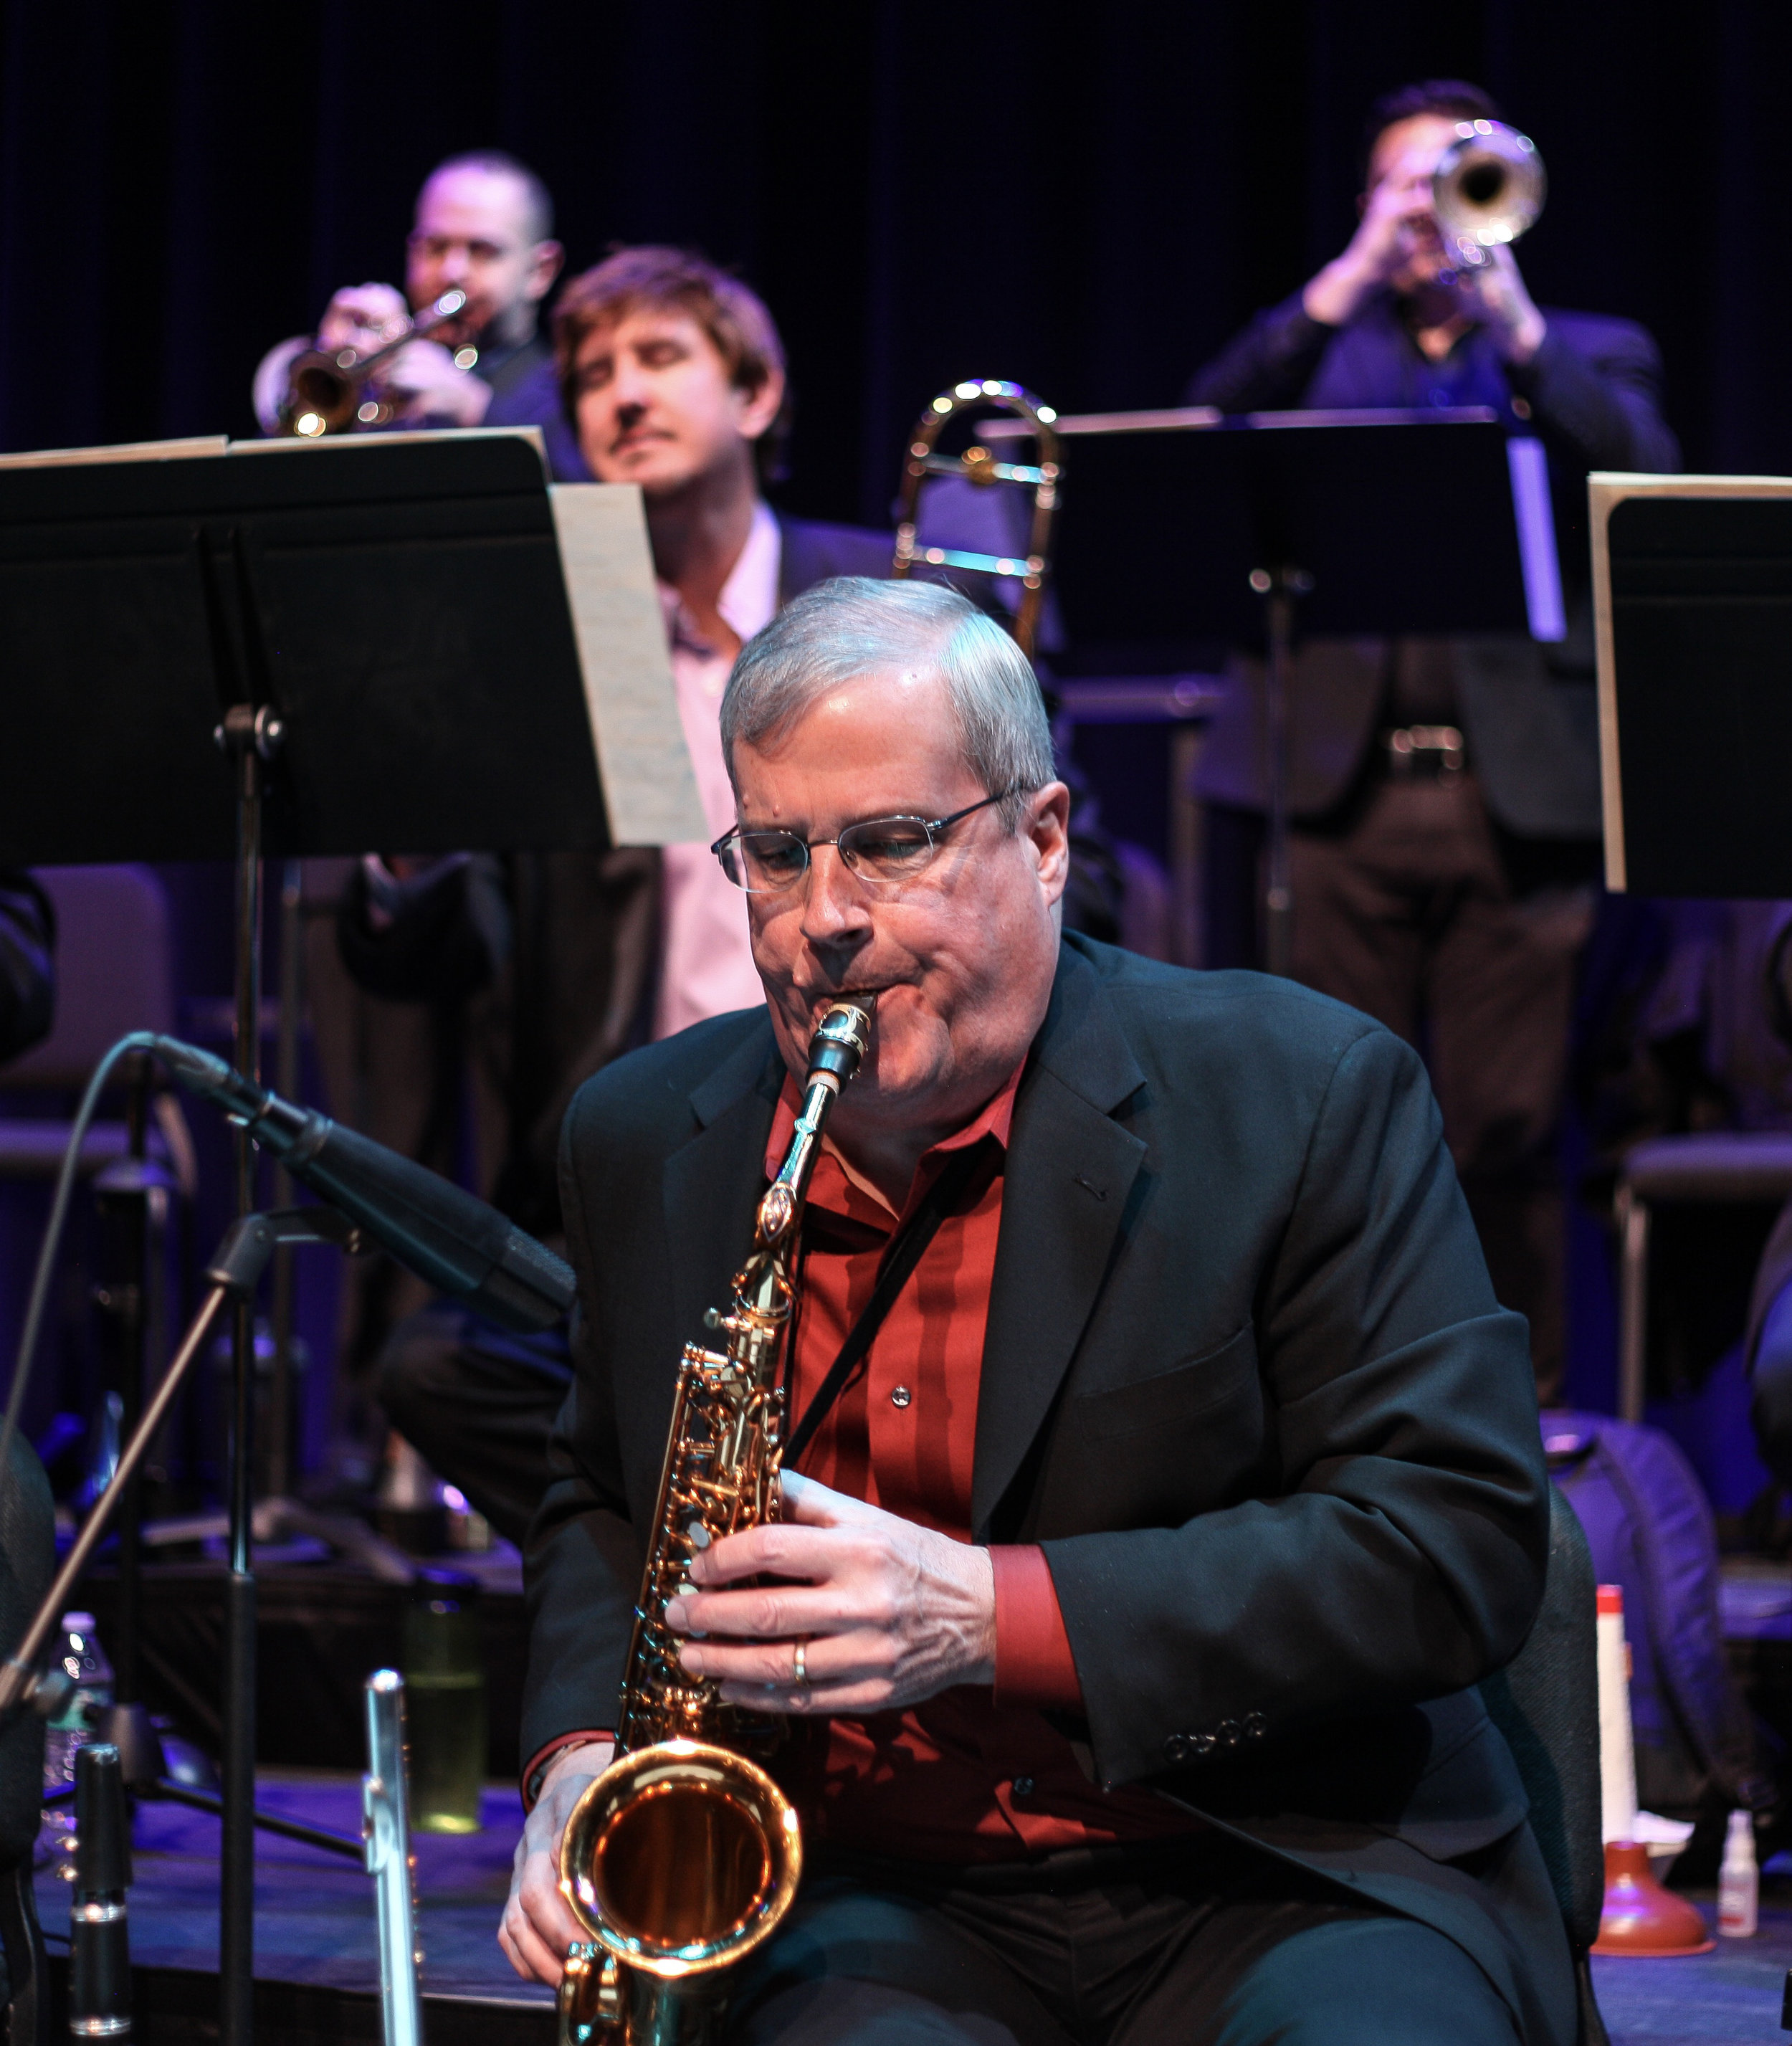 With Colorado Jazz Repertory Orchestra